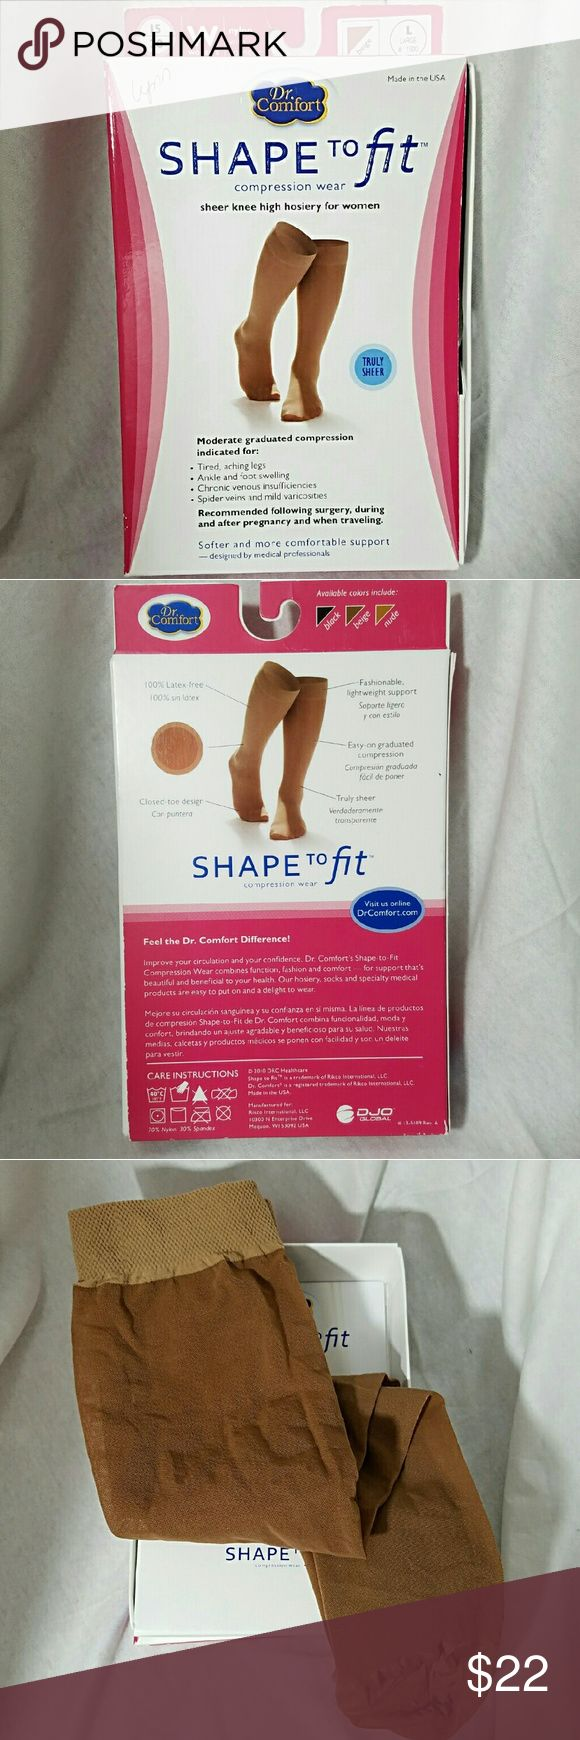 DR. COMFORT *nwt* Shape to Fit Large Compression Brand: Dr. Comfort  Item: *Shape to Fit Compression Wear Sheer Knee High Hosiery For Women *Size Large *Beige *Moderate Compression for Traveling, Post Surgery & During Pregnancy *Prevent Swelling in Legs Ankles & Feet *Protects Against Spider Veins *Encourages Circulatory Wellness *These are NOT Thin Like Panty Hose *My First Name is on Box, But They're NWT *Comes with Reading Material  *Such a Great Add on To Your Purchase w/ No Extra…